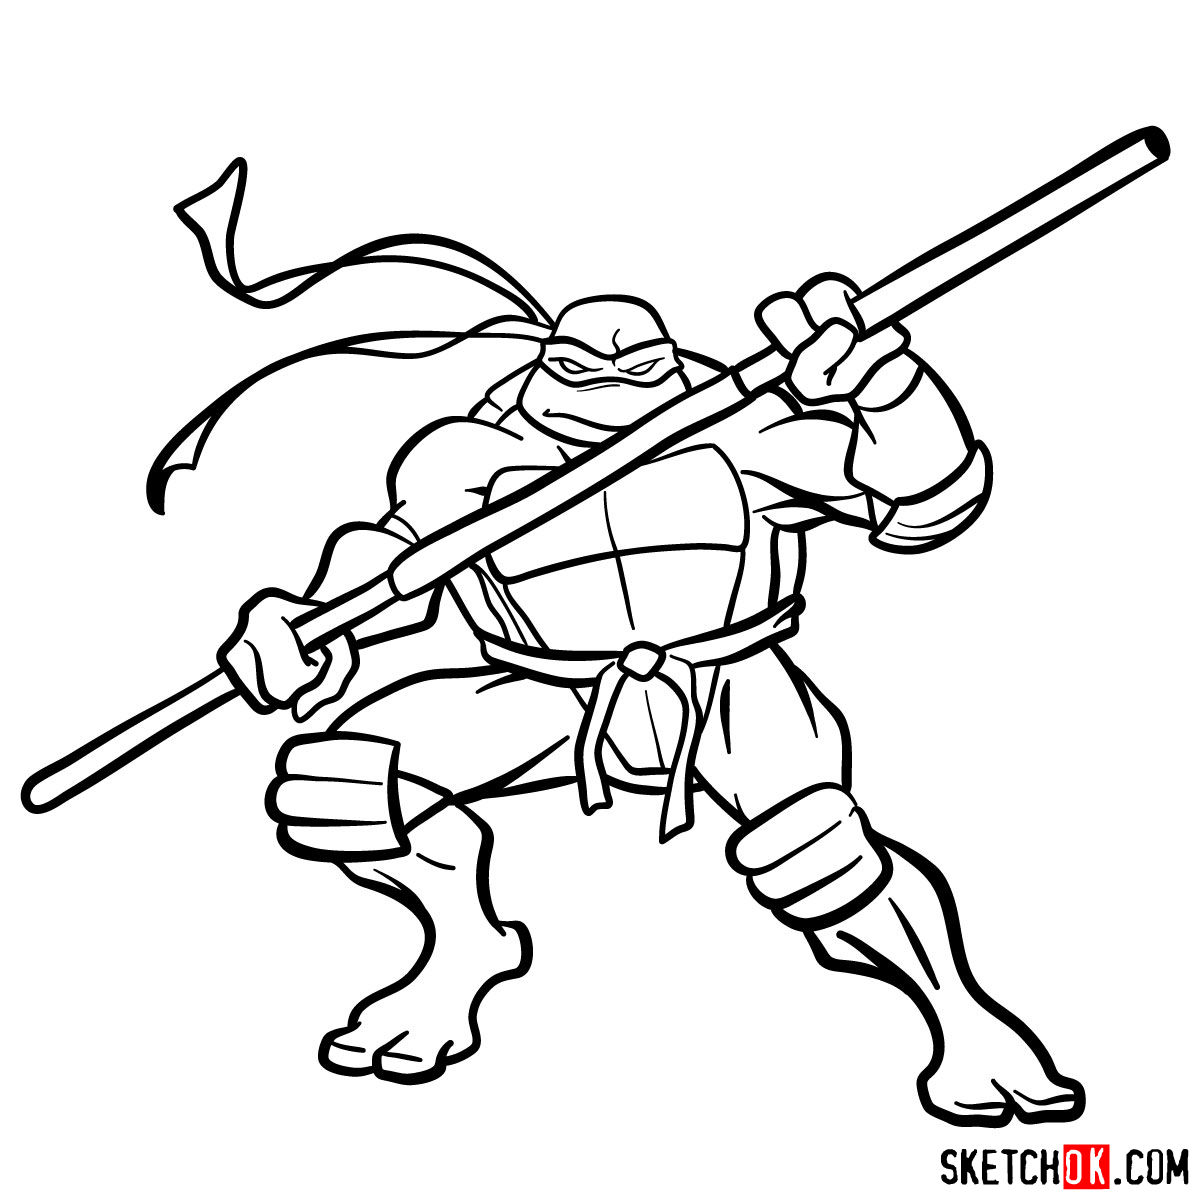 How To Draw Donatello Ninja Turtle Sketchok Step By Step Drawing Tutorials